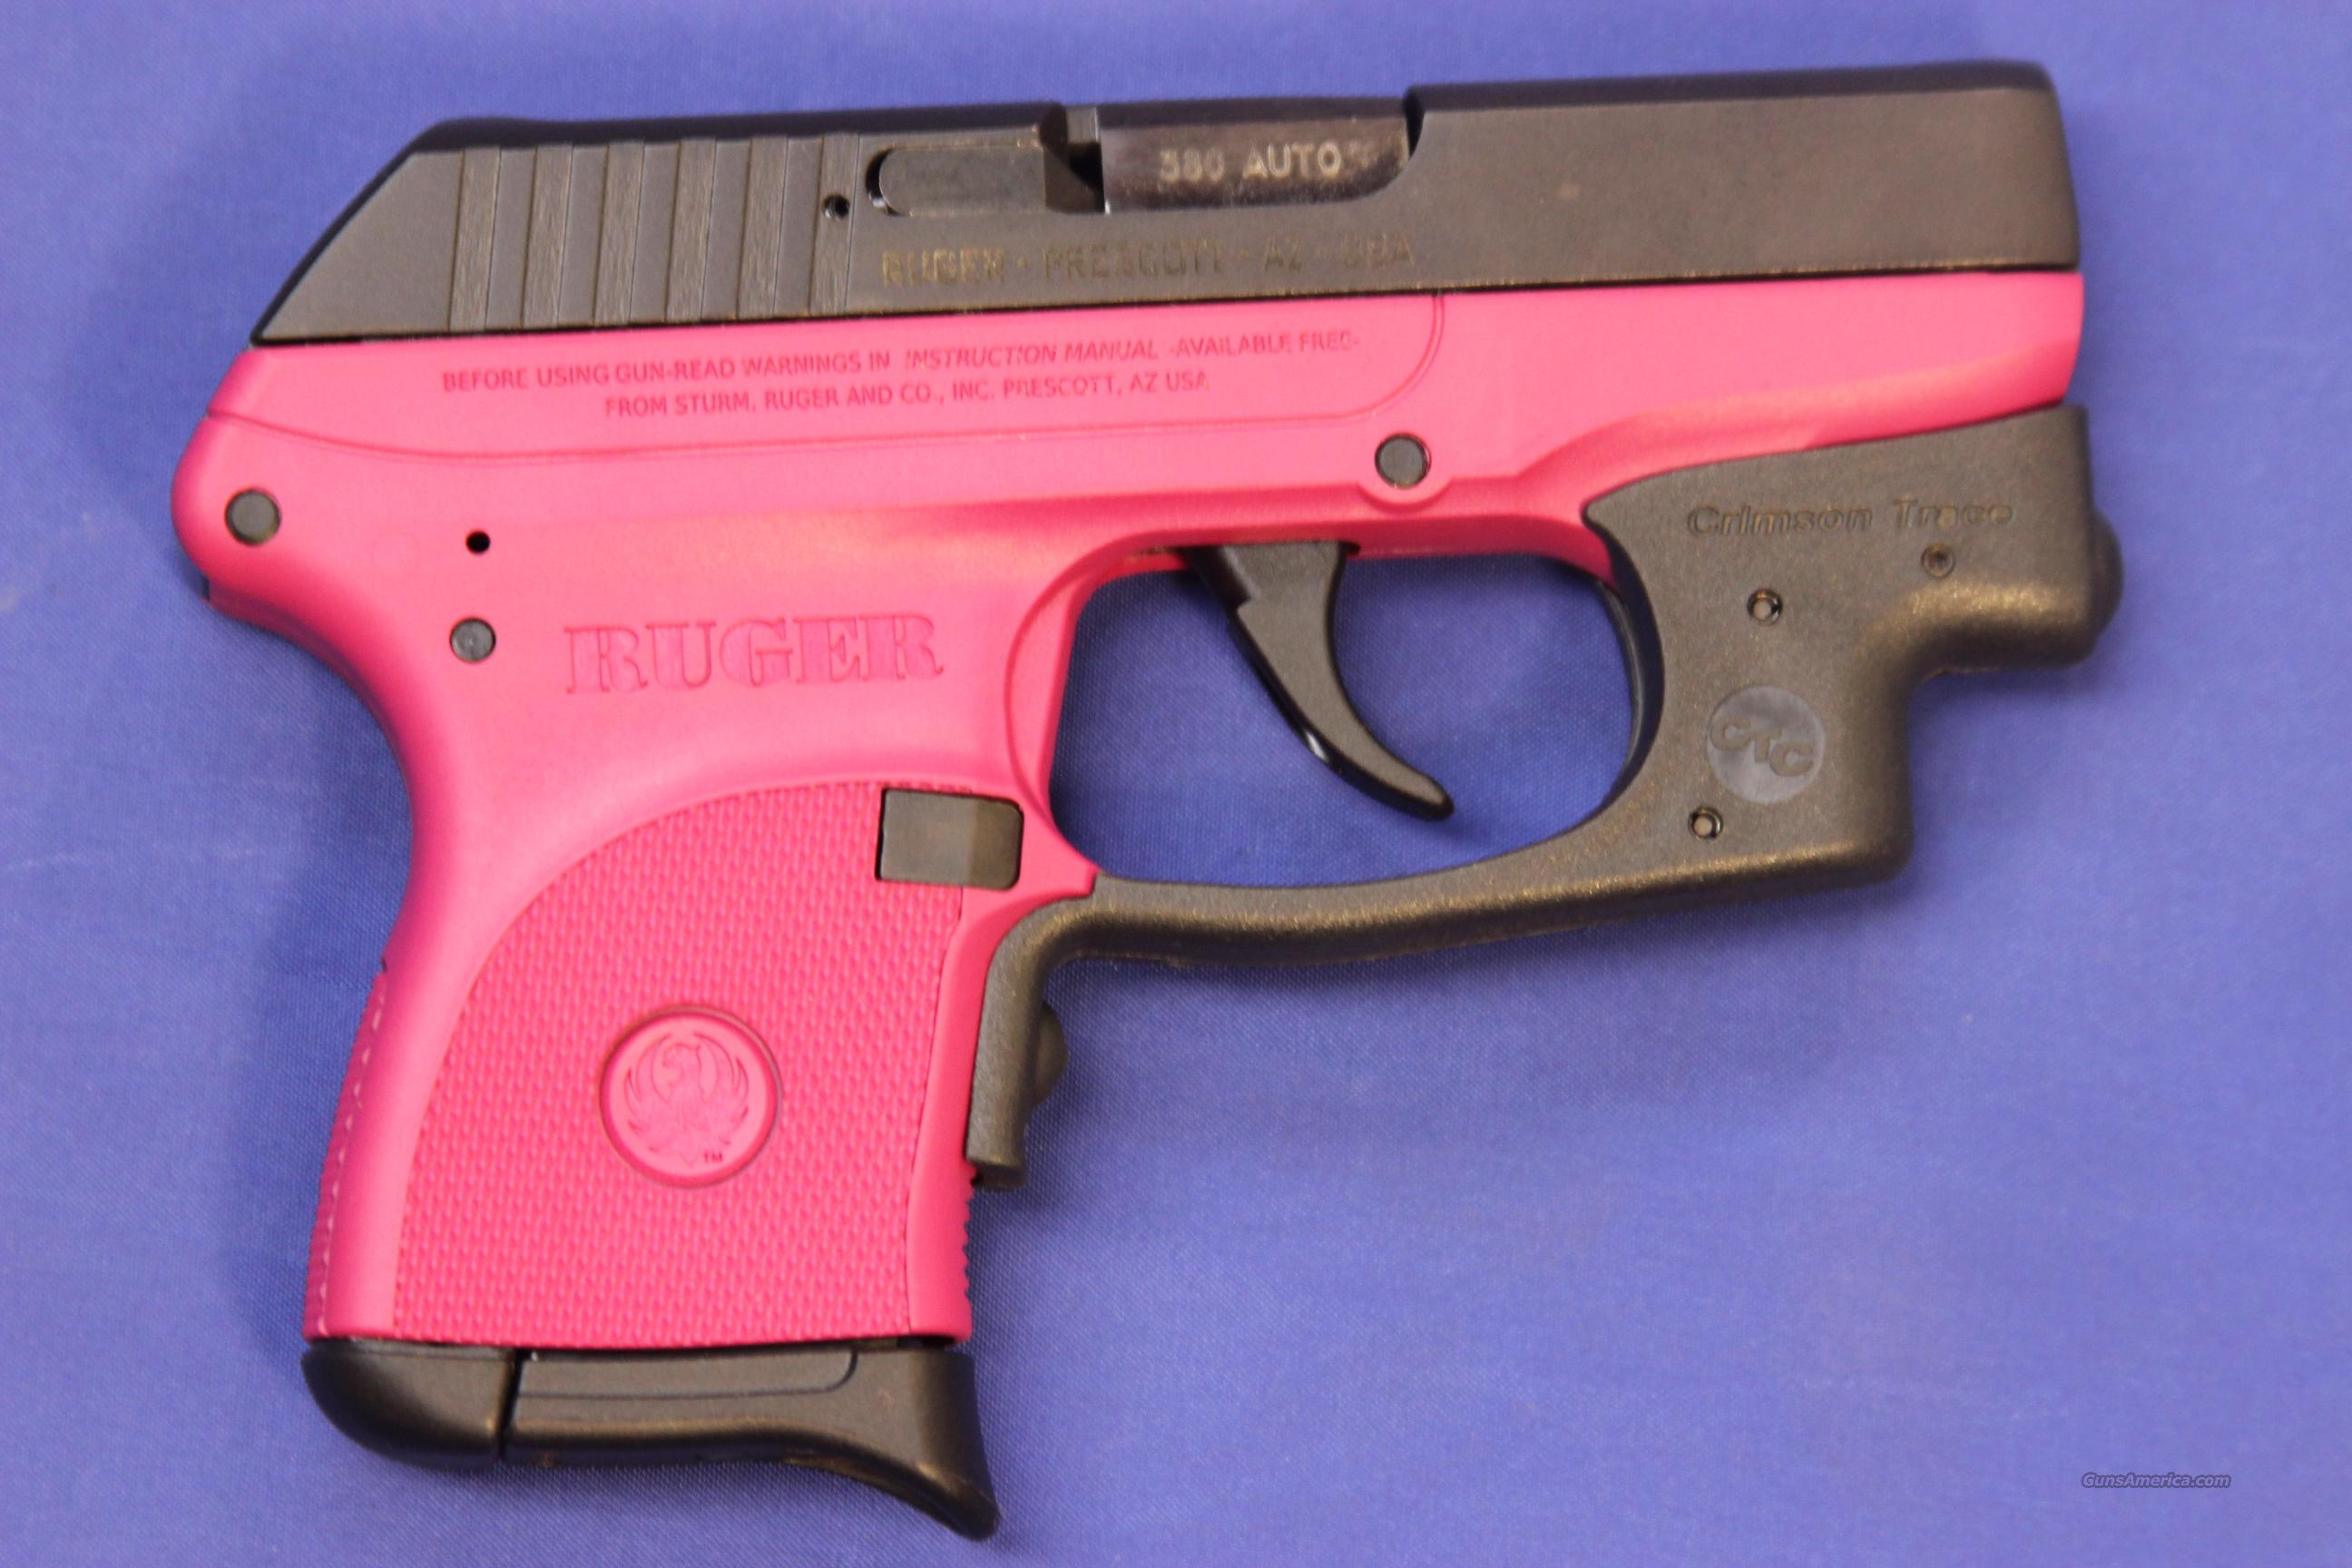 Ruger Lcp 380 Auto Raspberry Pink W Laser For Sale